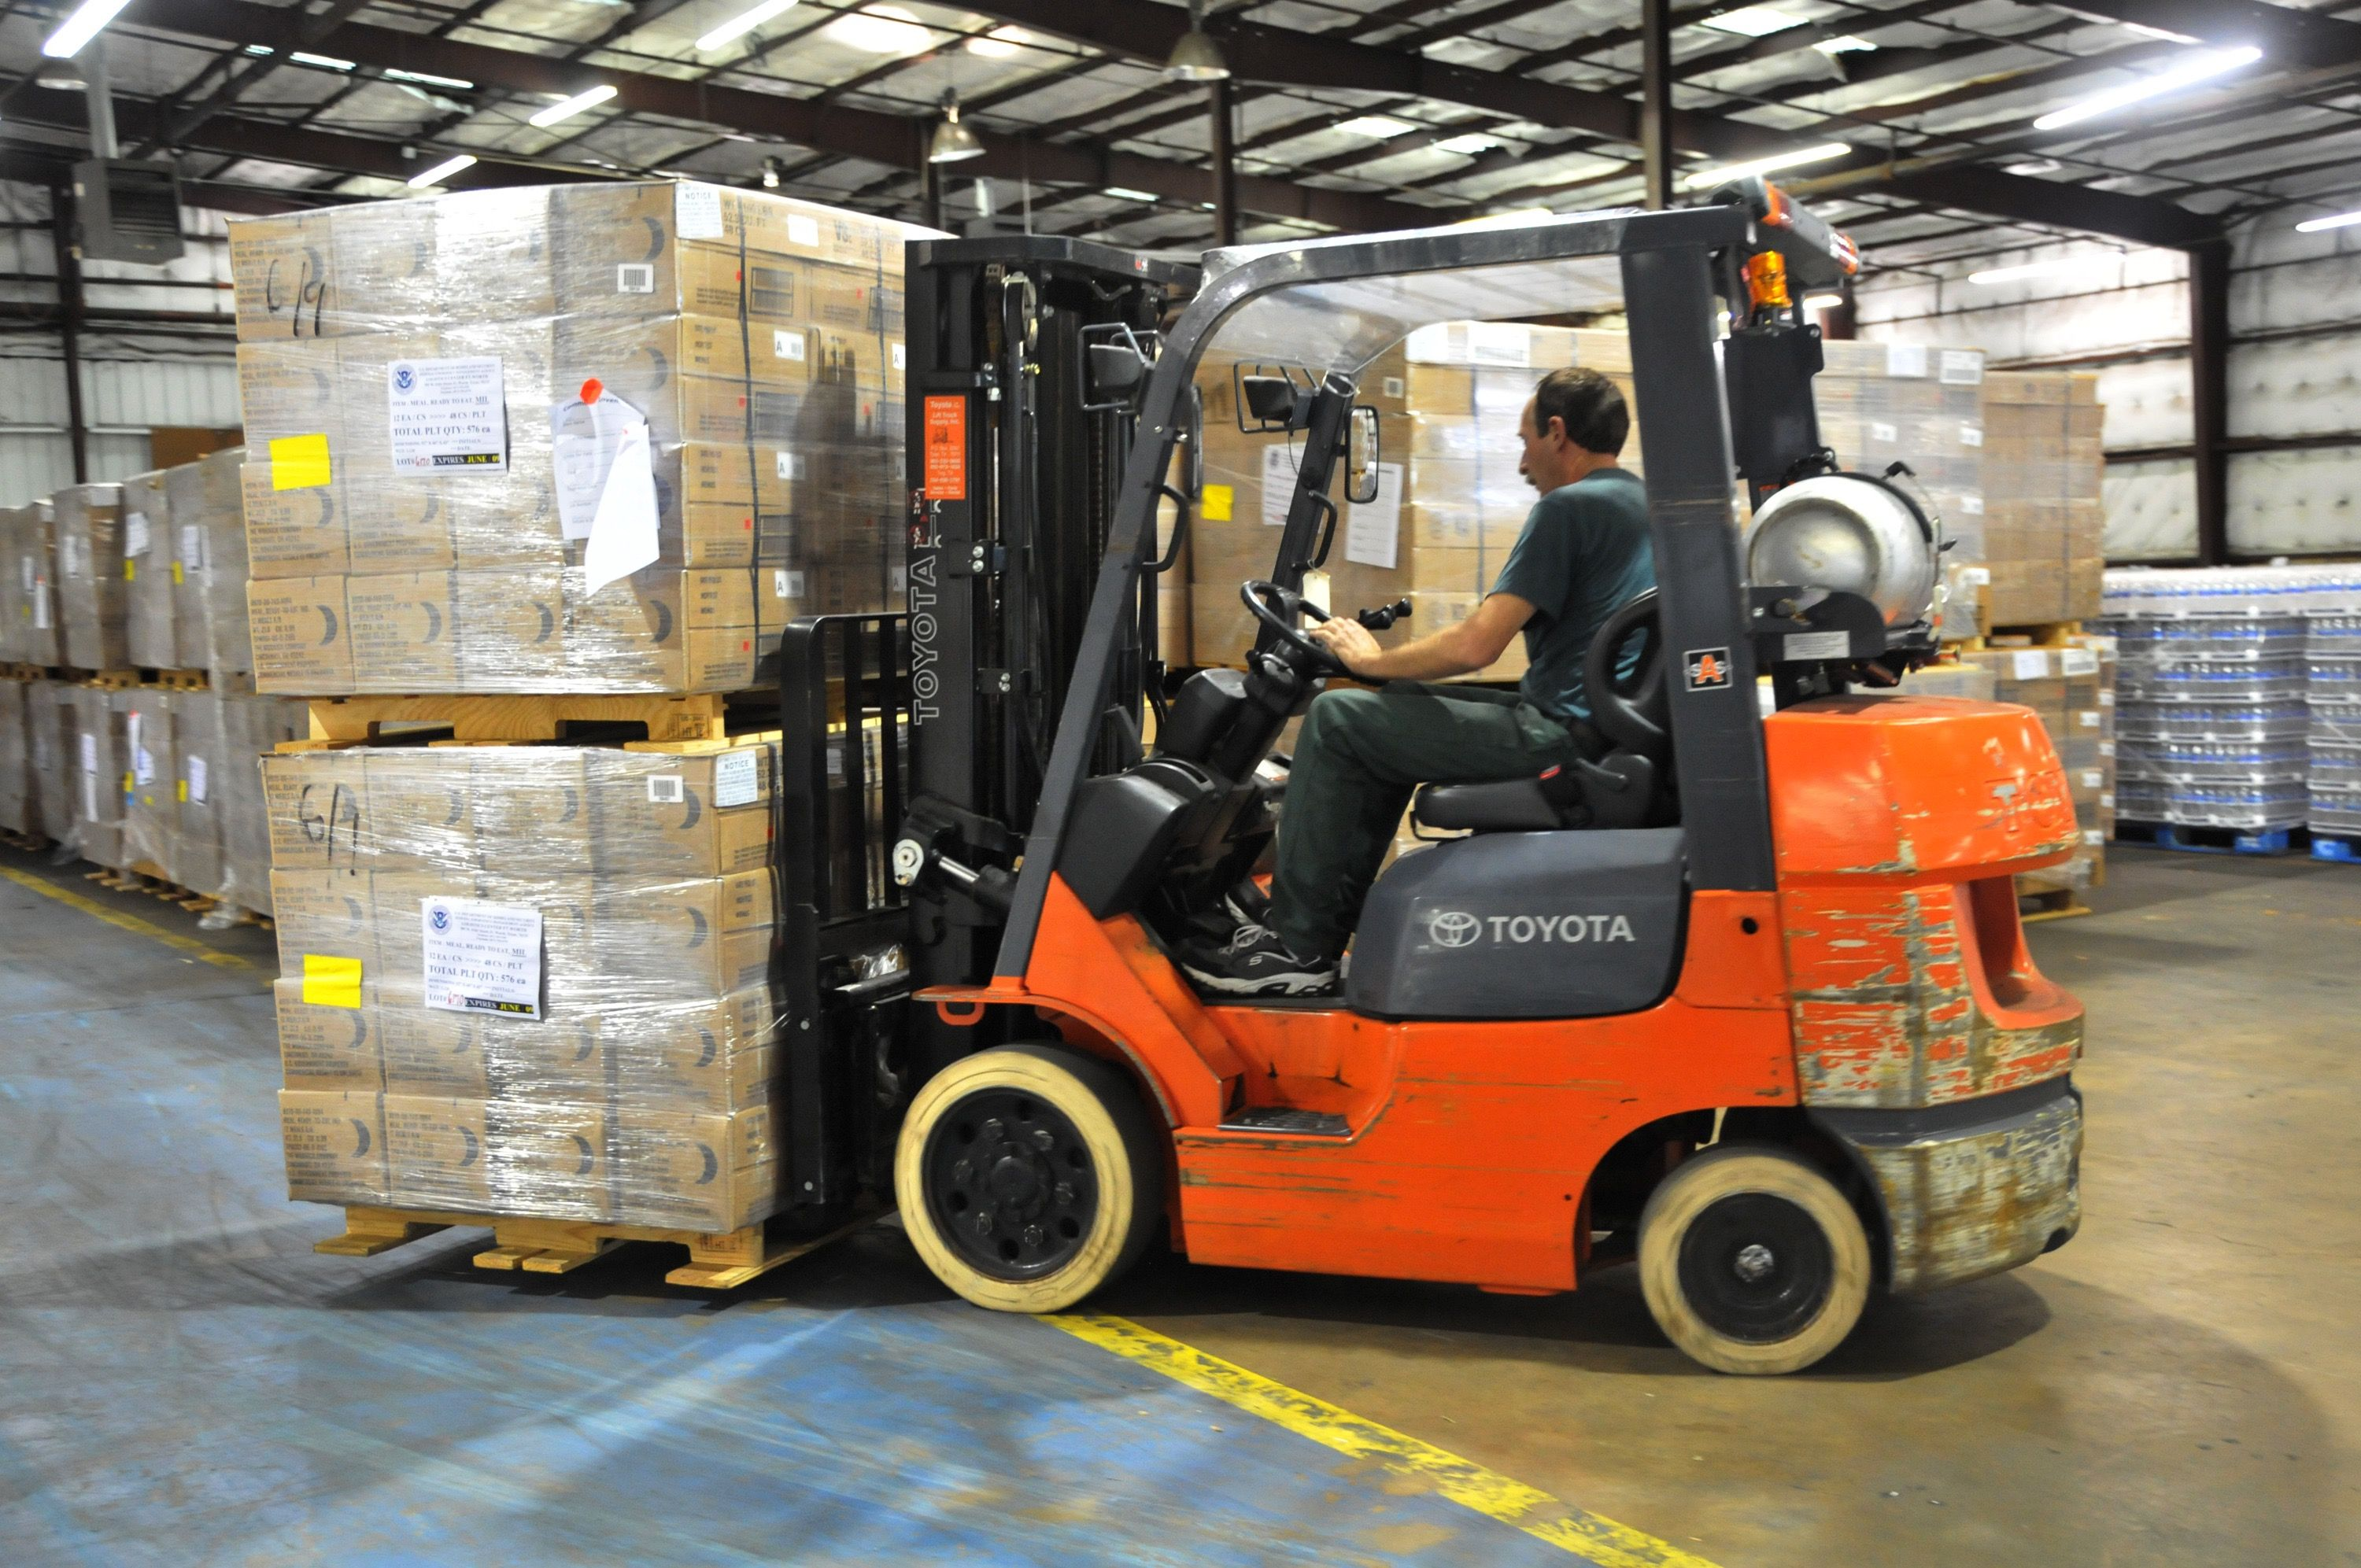 FEMA_-_37931_-_Meals_Ready_to_Eat_being_moved_by_fork_lift_in_a_Texas_warehouse-1